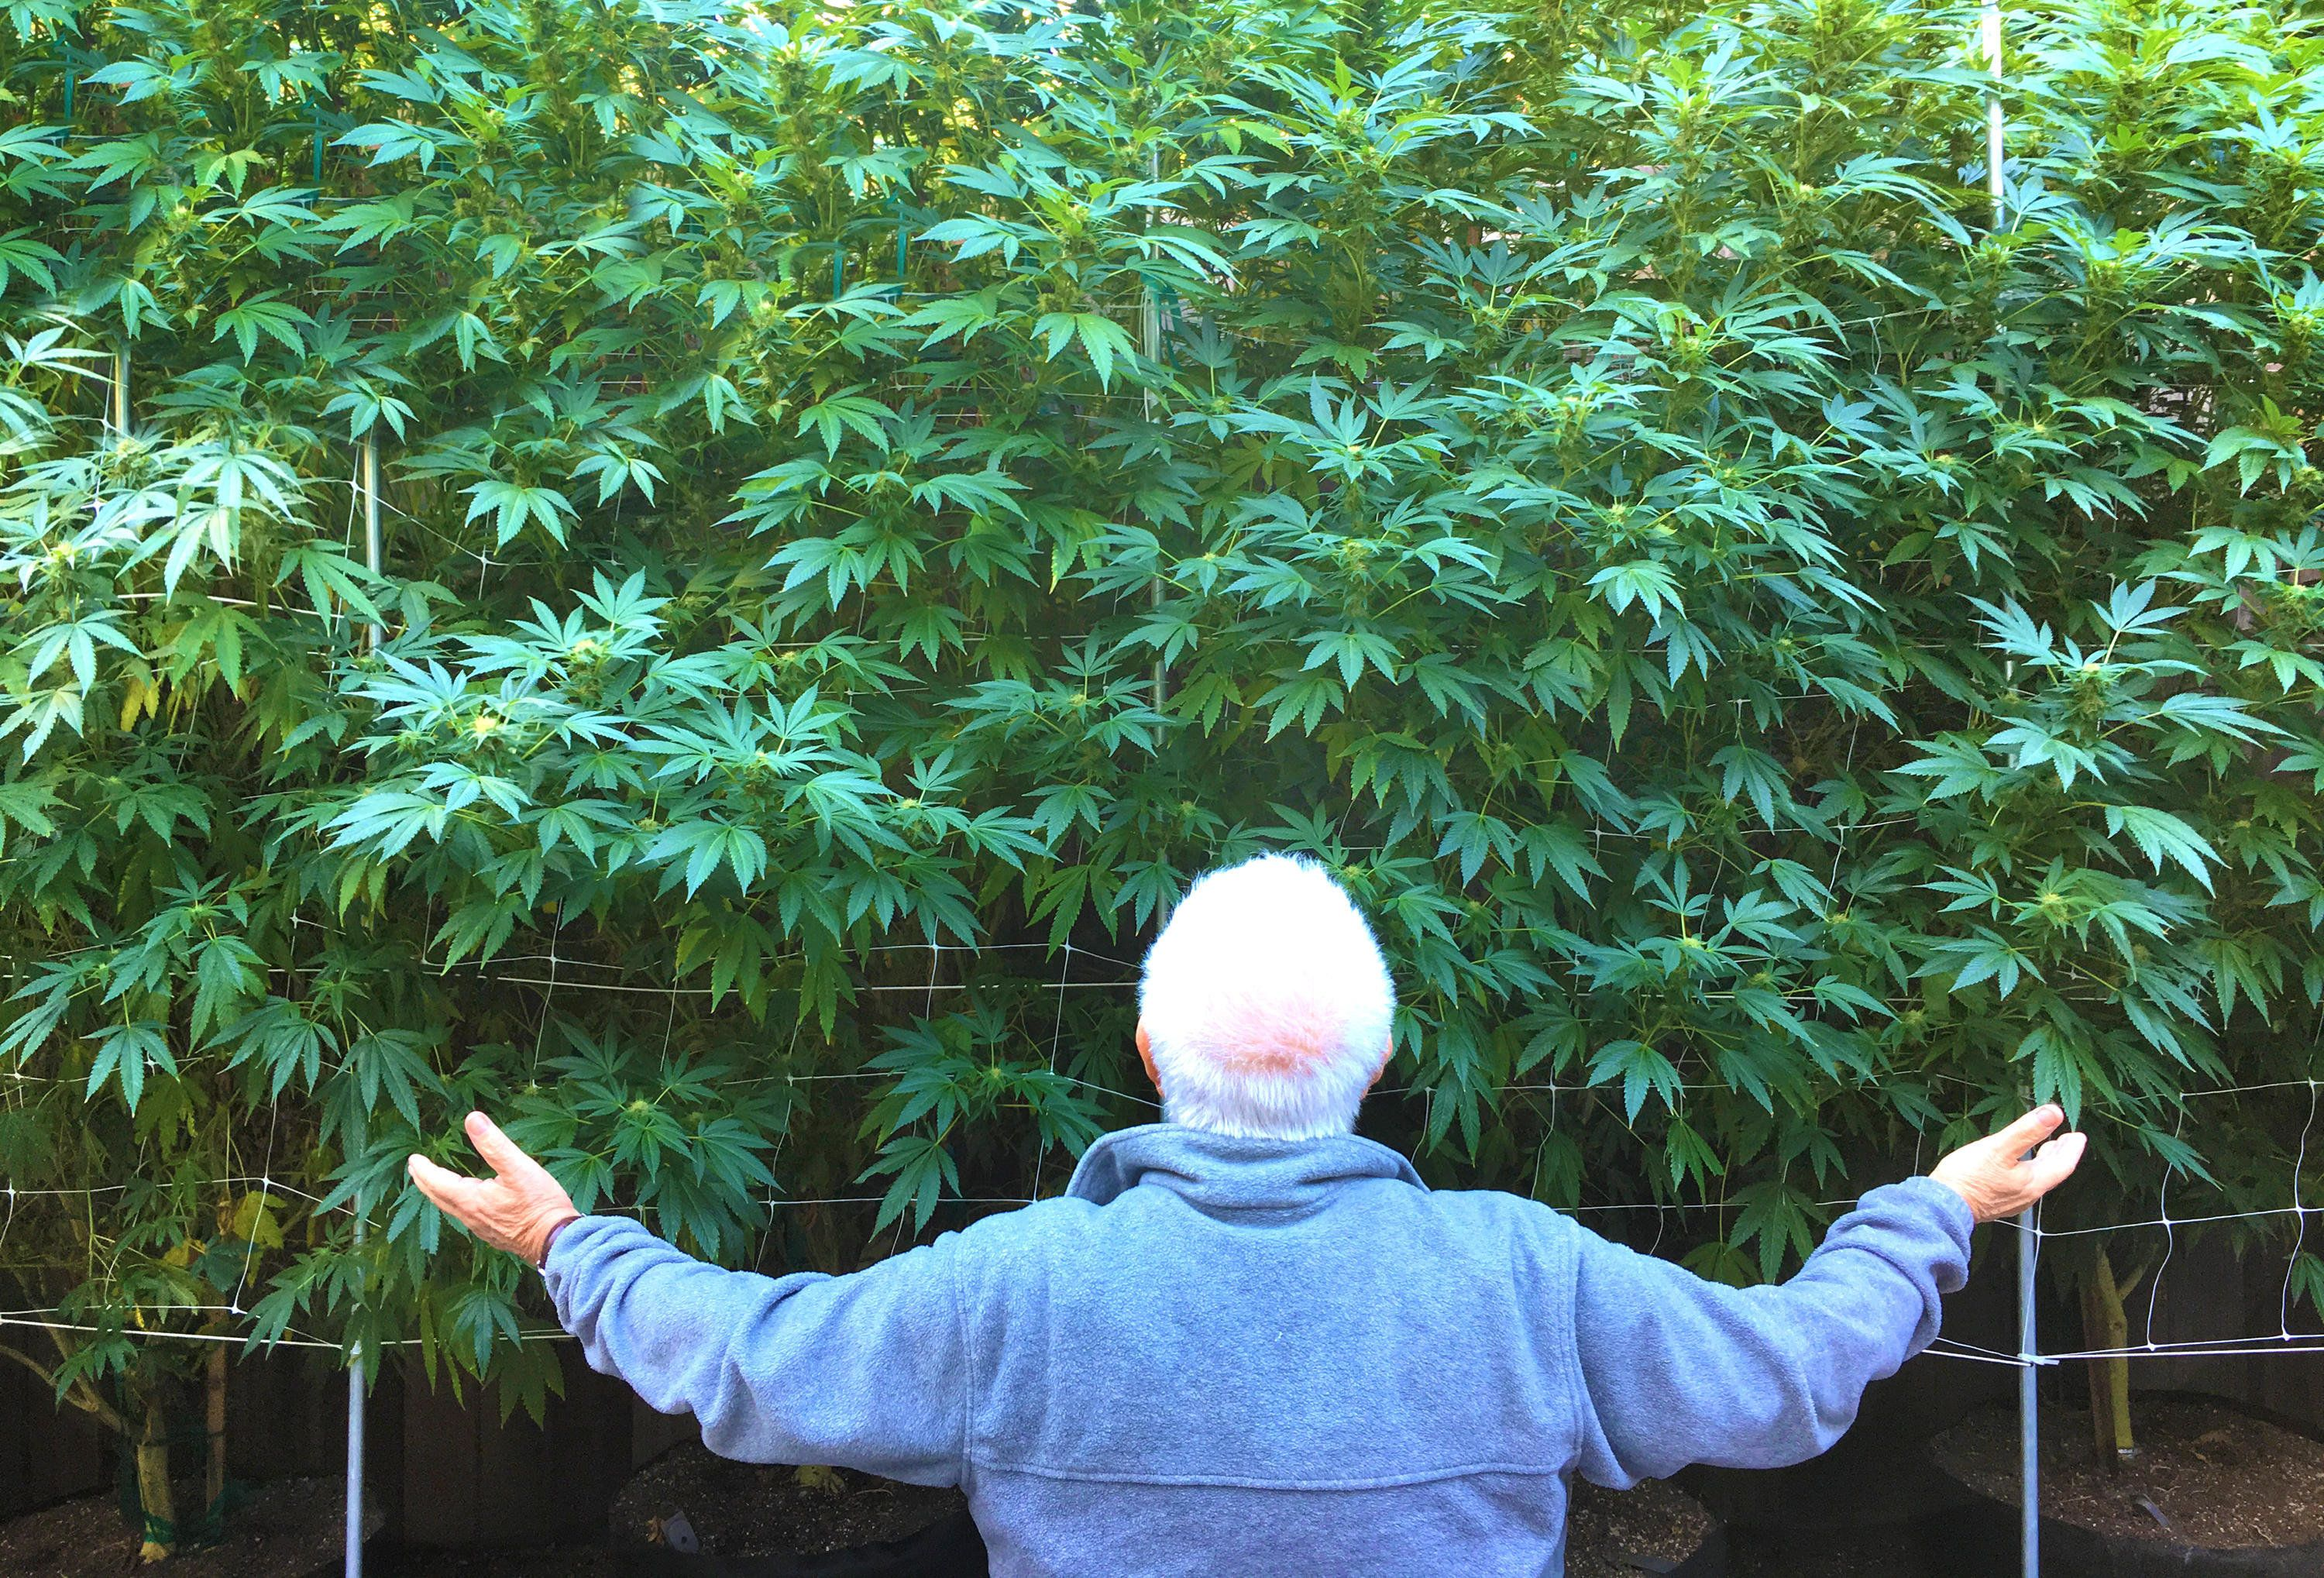 KEJ4PA Old senior man Cares for His weed Plants